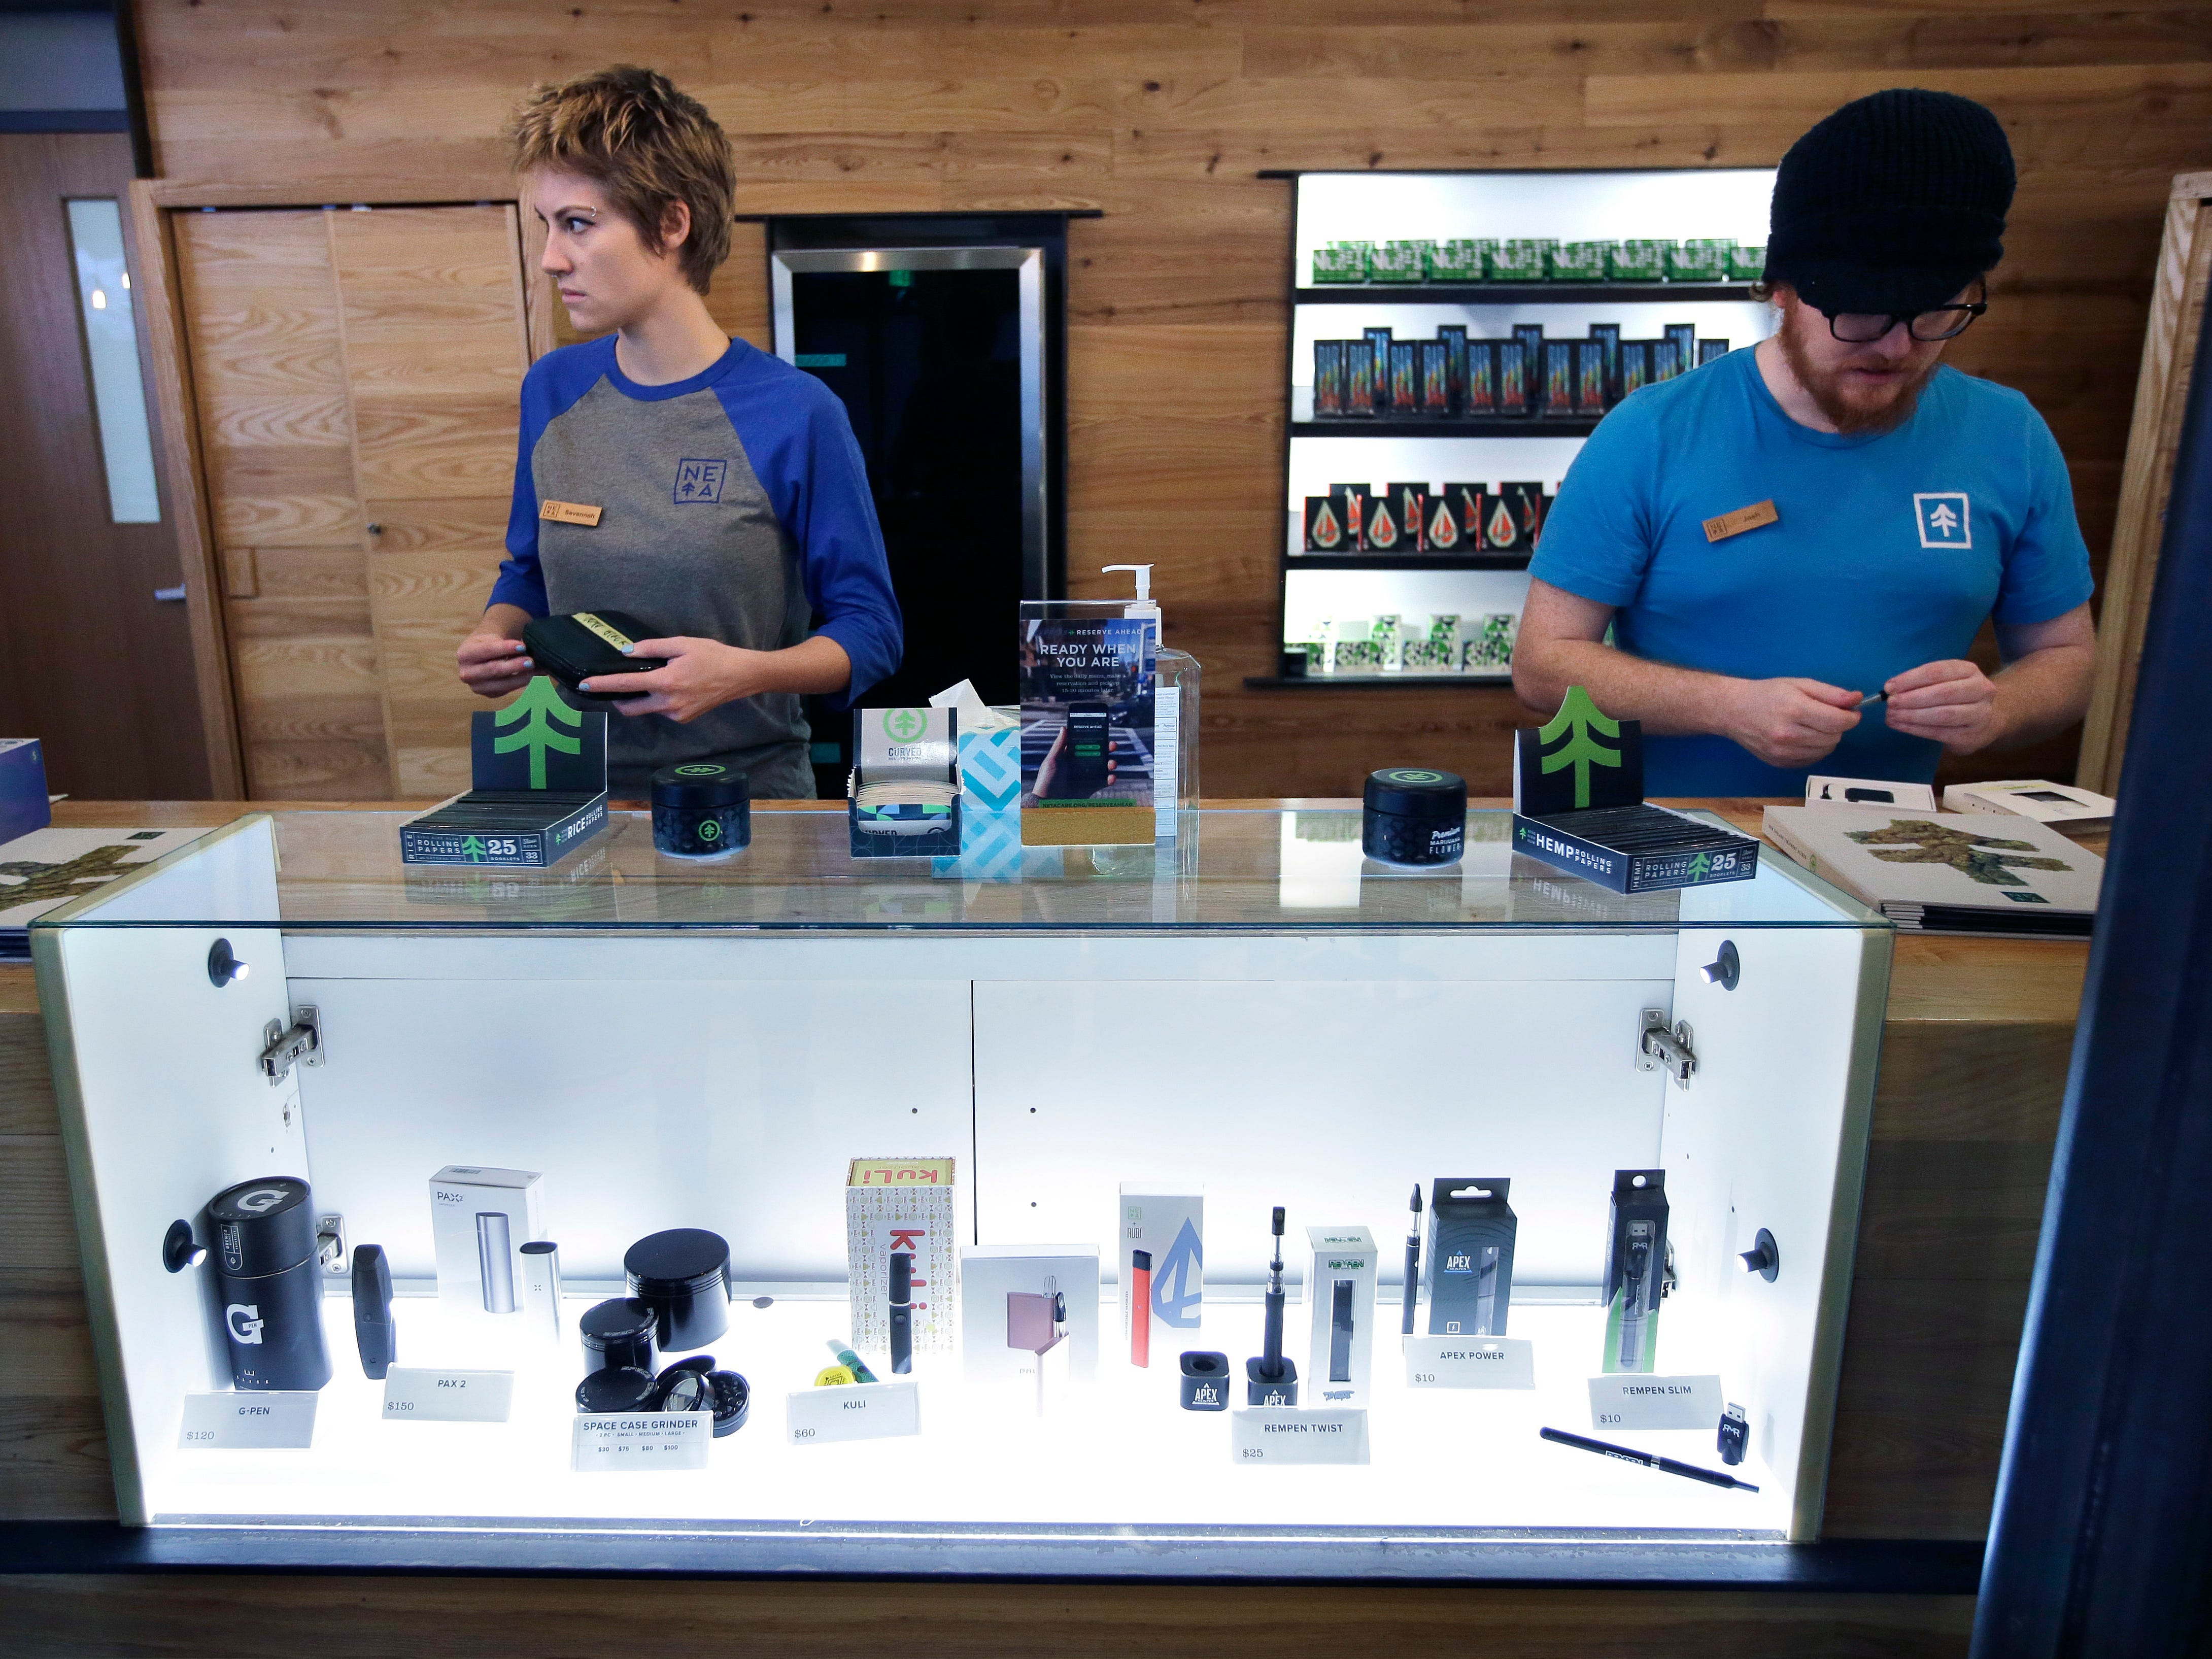 Patient service associates Savannah Stuitje, left, and Josh Hirst, right, stand at a counter that features a display of vape dispensers, below, that could be used for legal recreational cannabis, at New England Treatment Access medical marijuana dispensary, in Northampton, Mass, Oct. 17, 2018. New England Treatment Access, and another store in Leicester, Mass., have been given the green light to begin selling recreational pot on Tuesday, Nov. 20, making them the first commercial pot shops in the eastern United States.